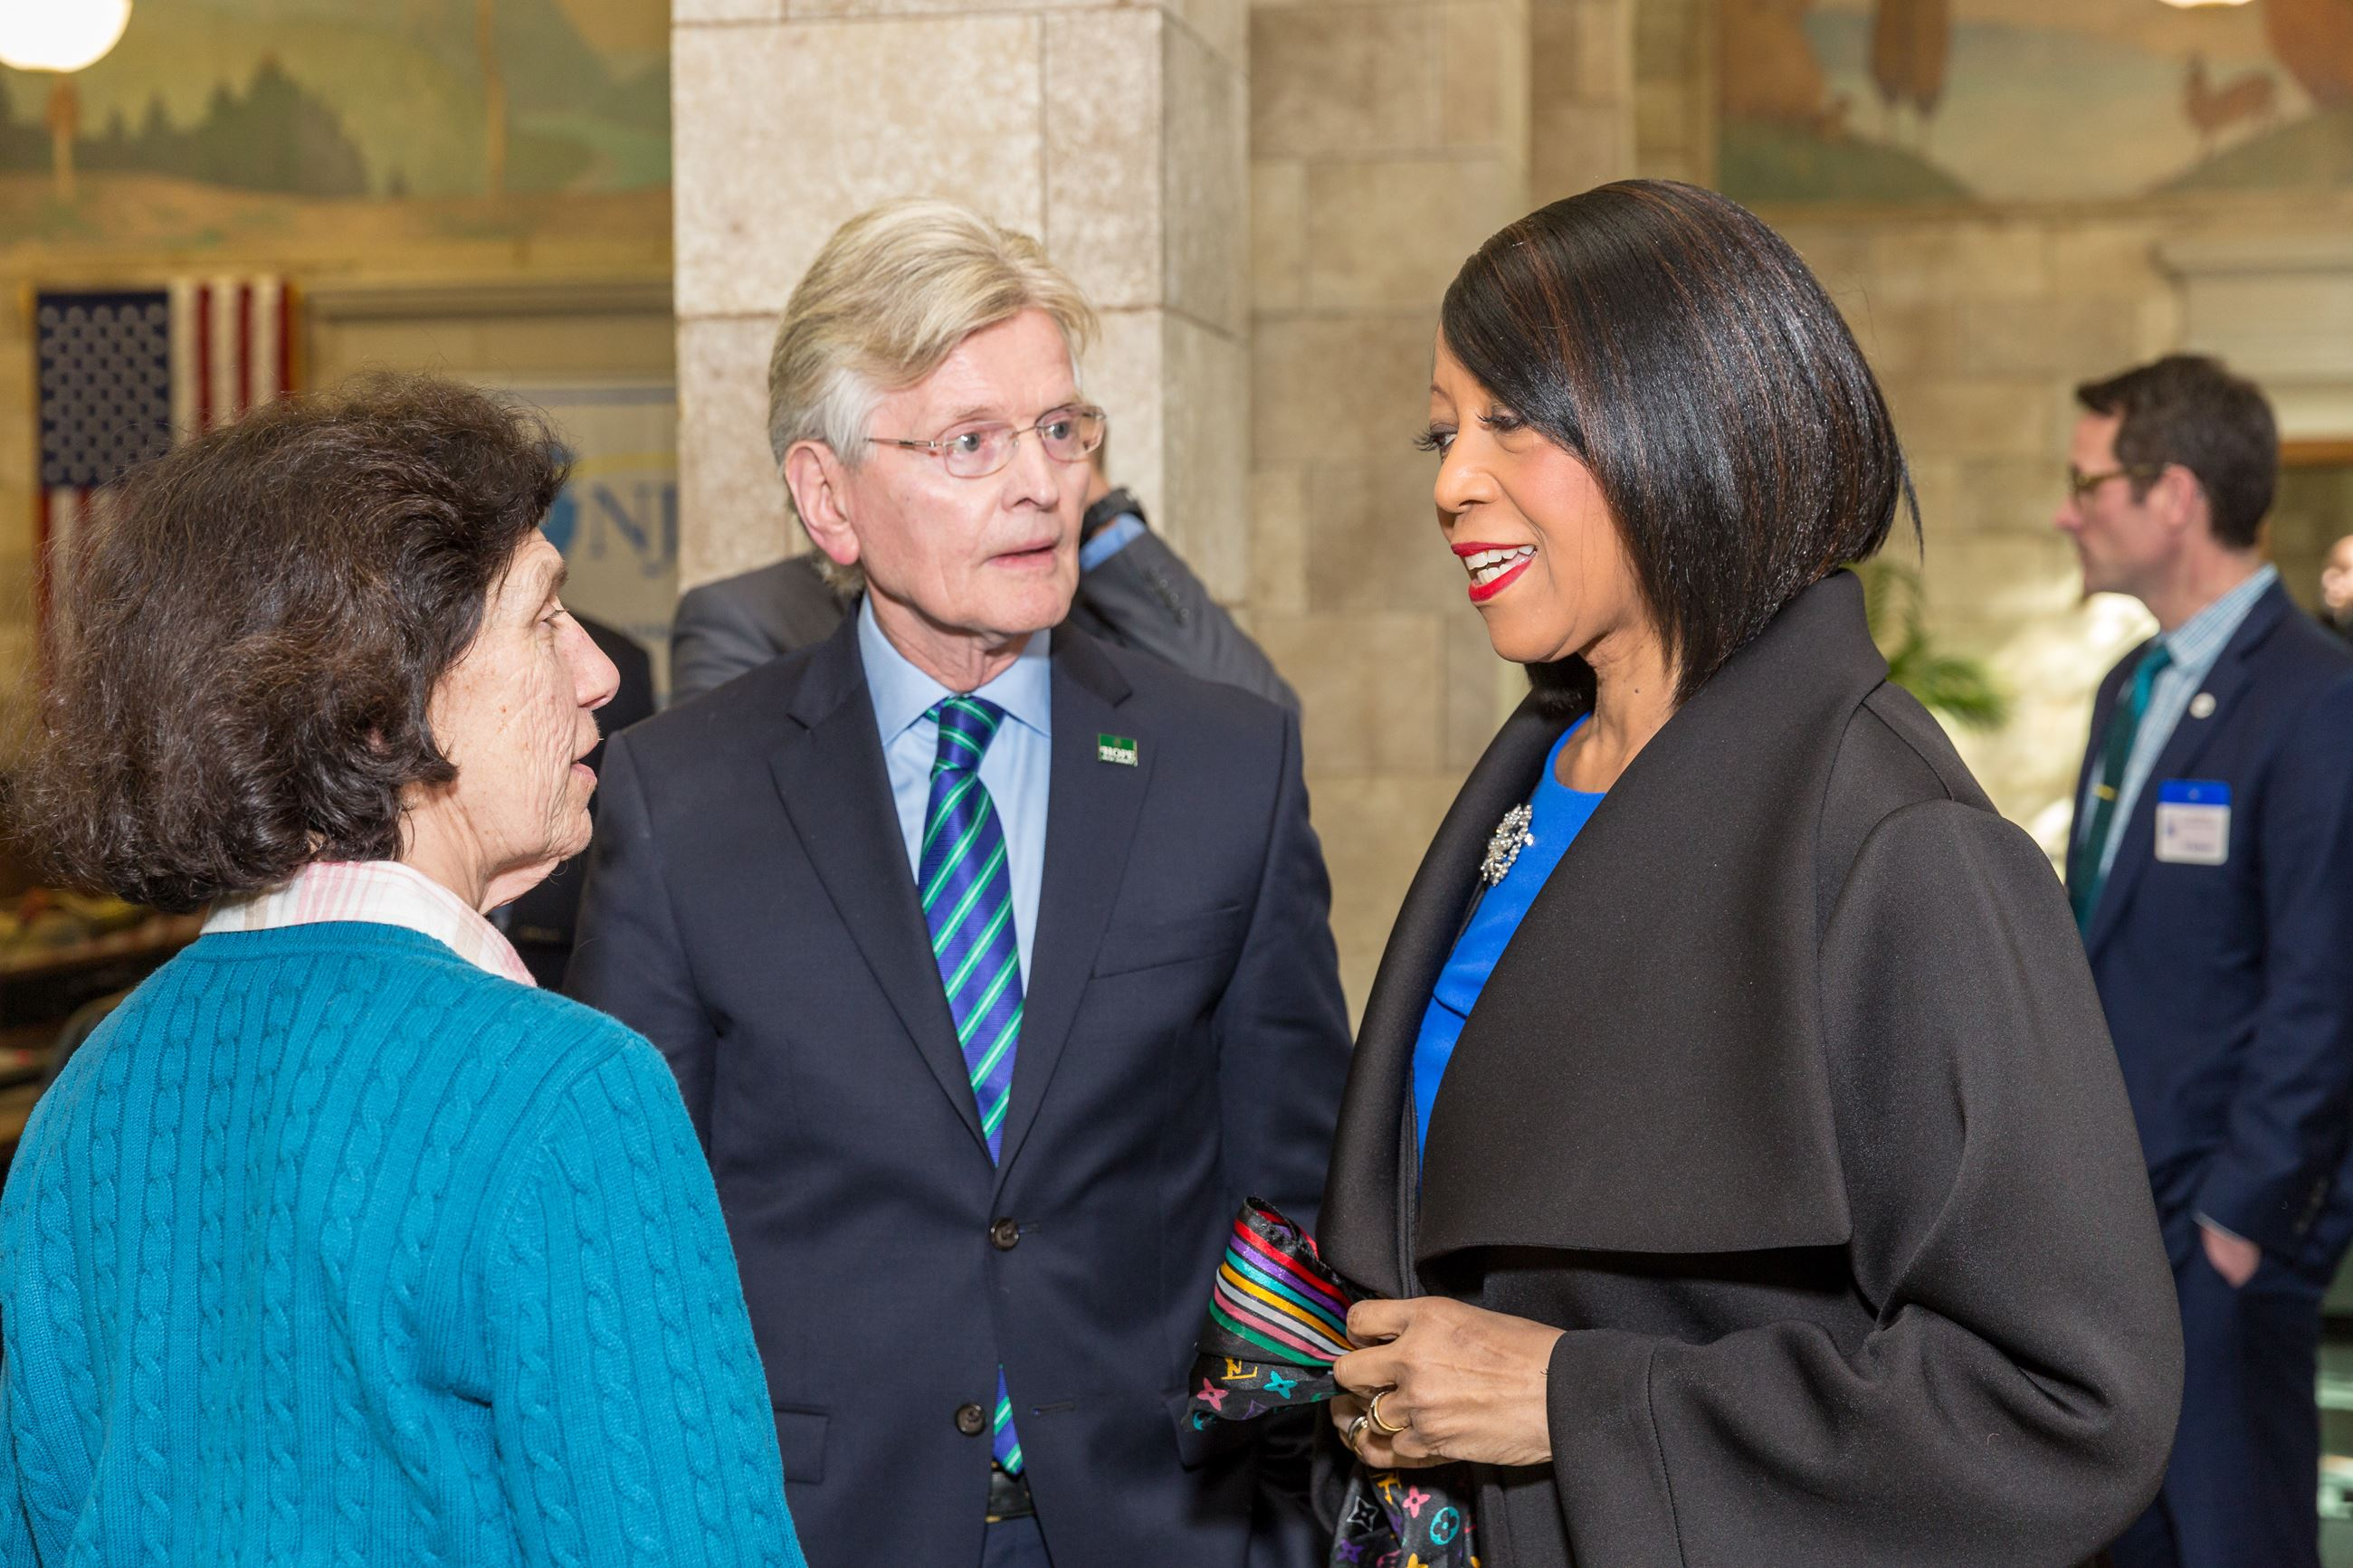 Mayors Janice Mironov, East Windsor, and Tim McDonough, Hope, with Lt. Gov. Sheila Oliver